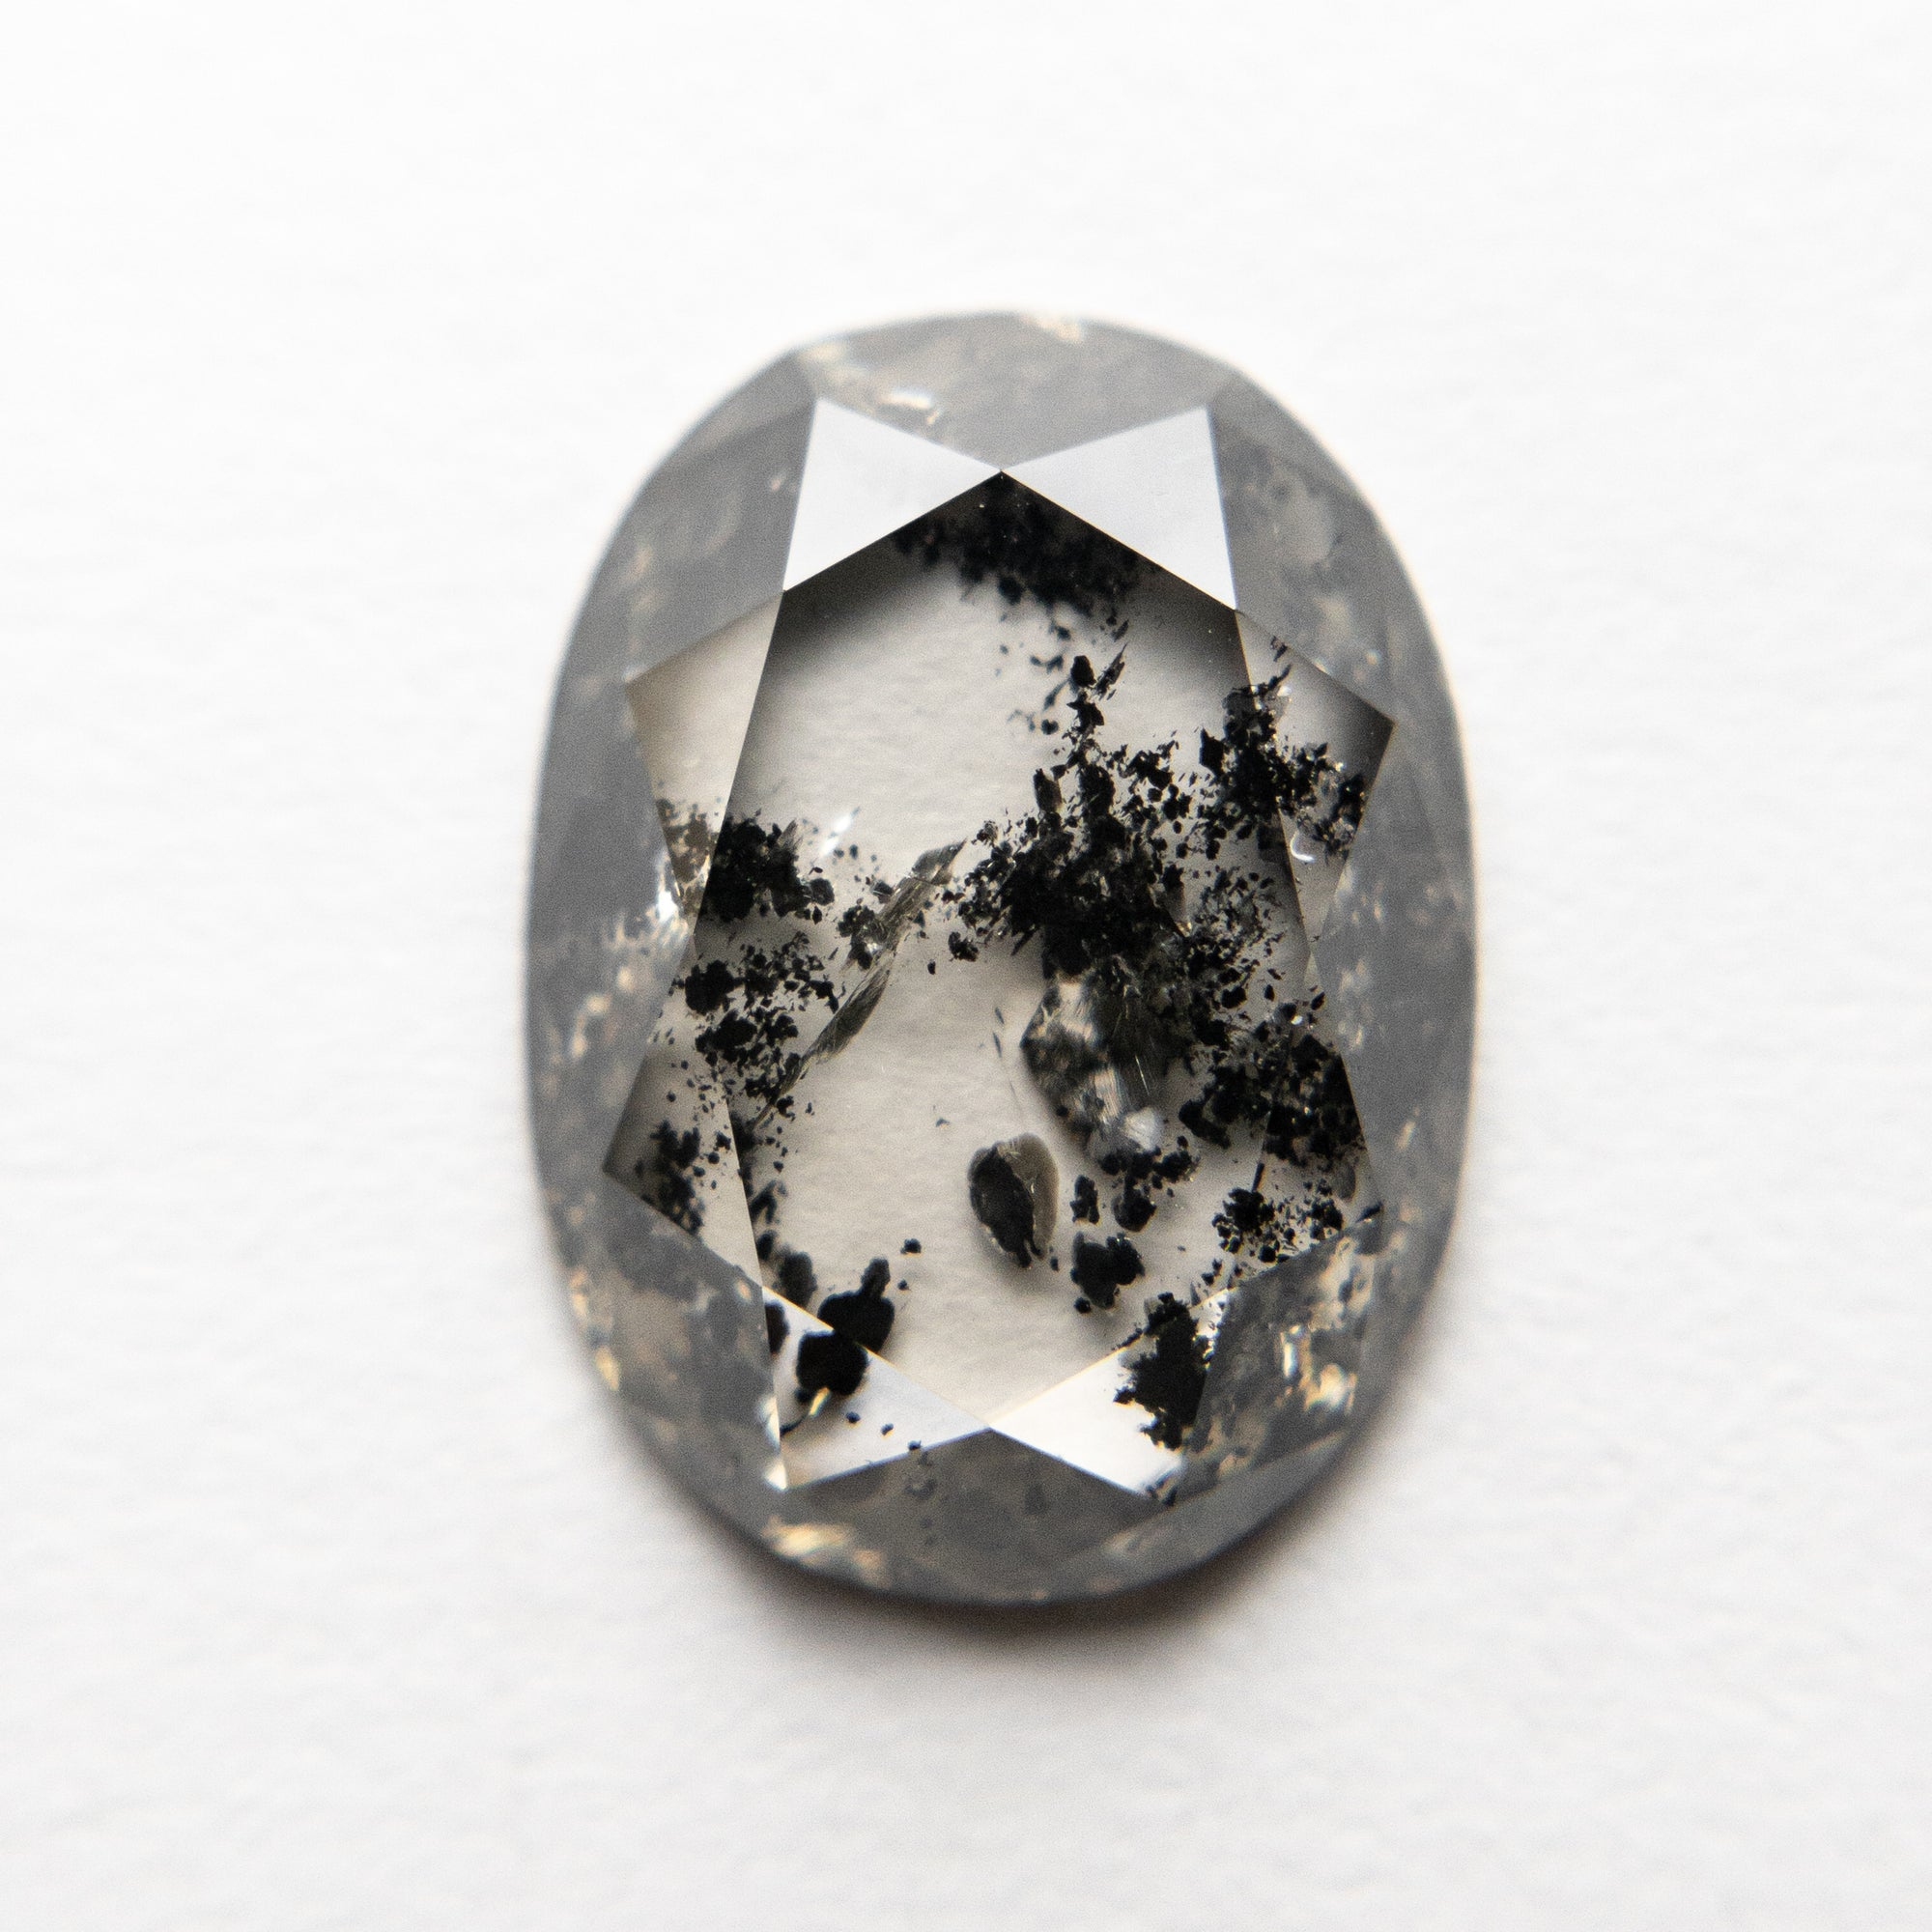 3.41ct 12.57x9.30x2.58mm Oval Rosecut 18419-01